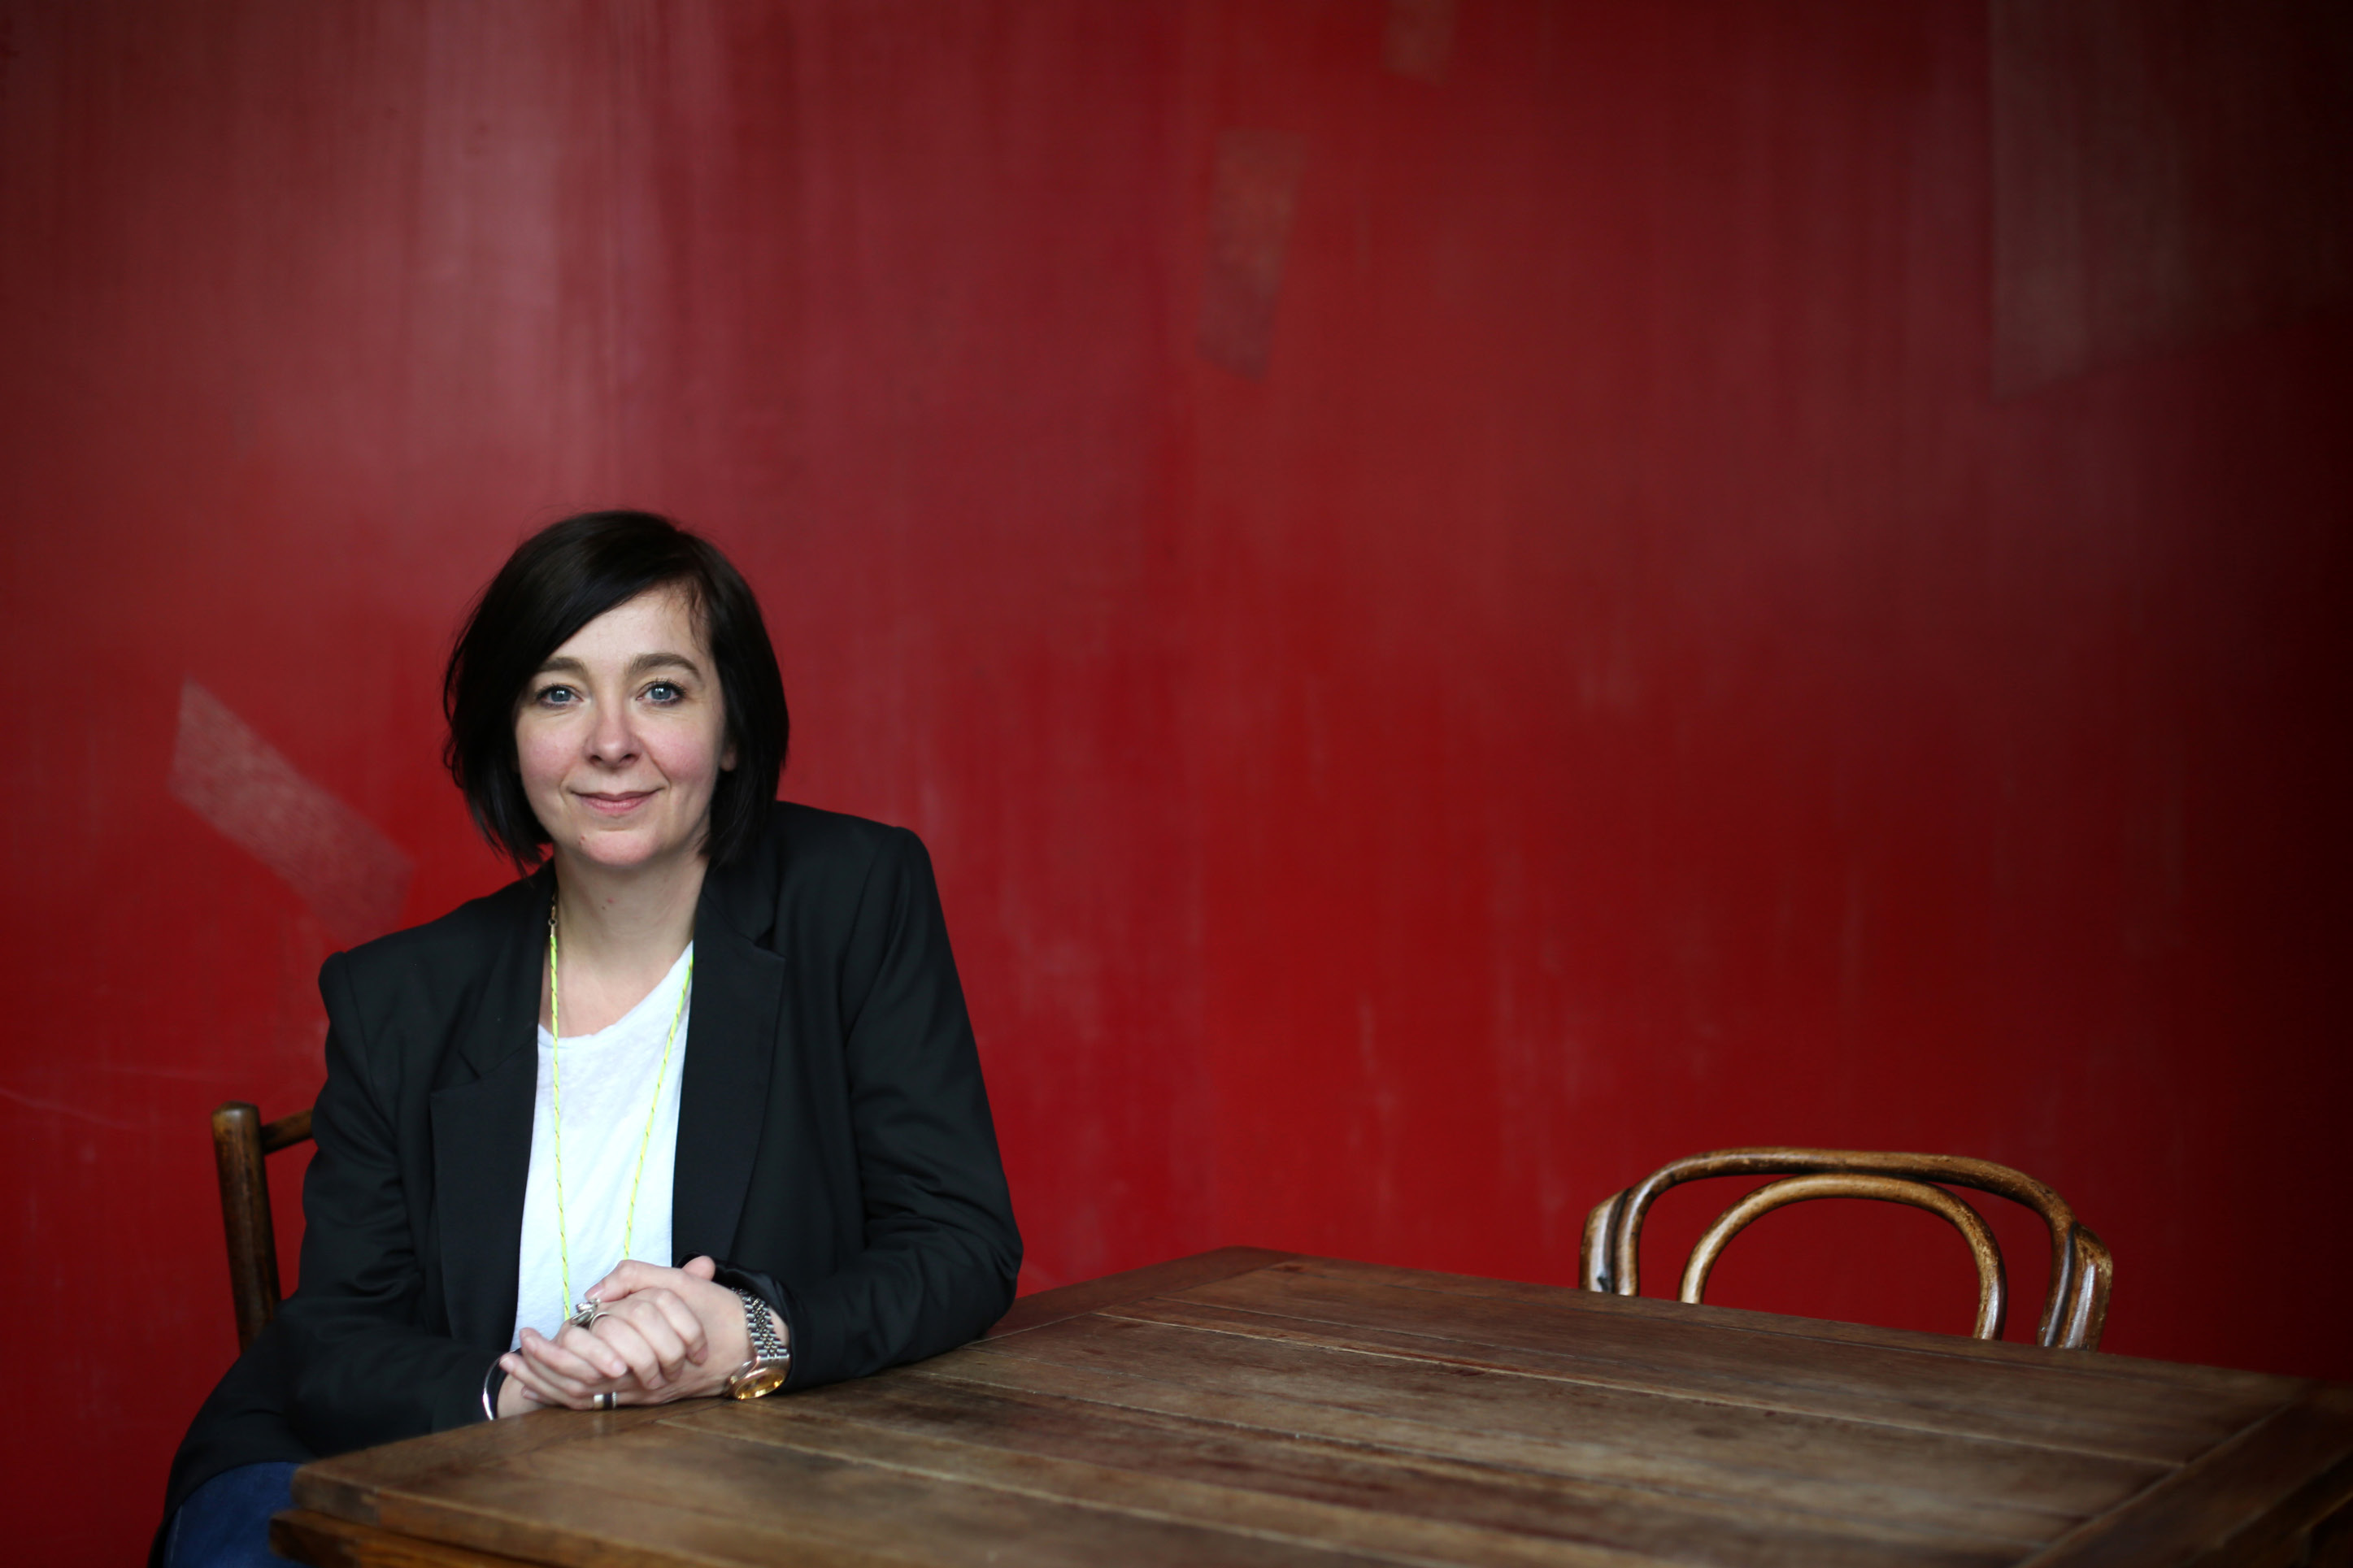 THE BIG INTERVIEW: Vicky Featherstone